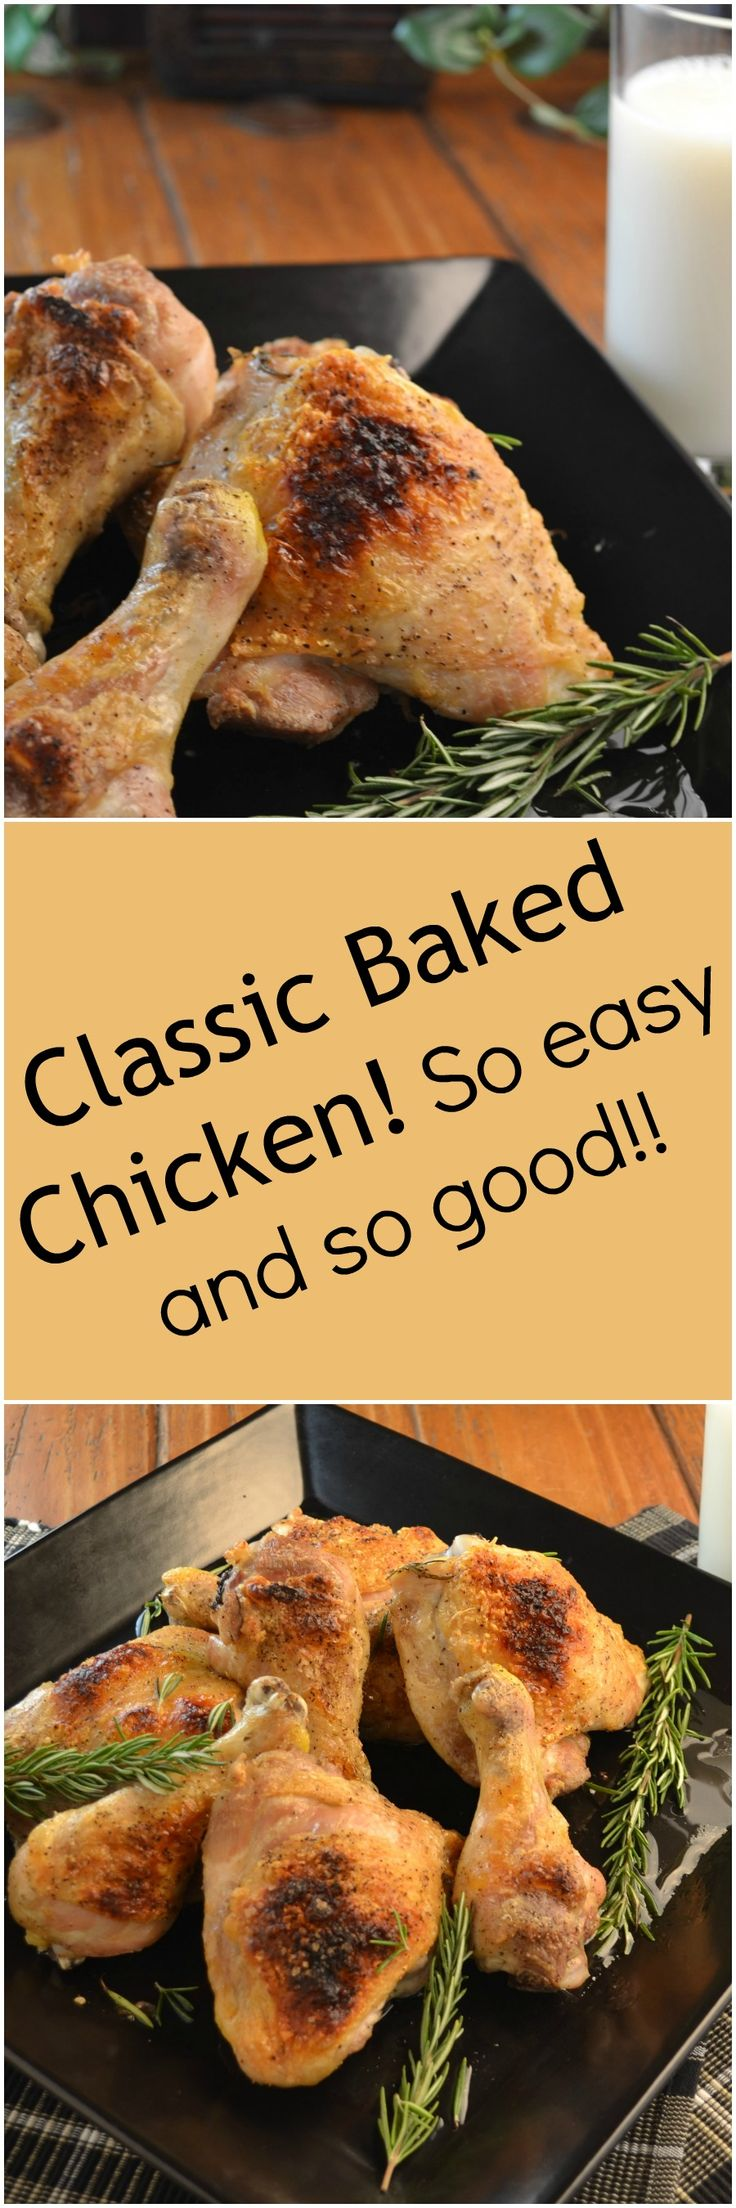 Best 25+ How To Cook Drumsticks Ideas On Pinterest  Chicken Leg Recipes  Oven, Roast Chicken Drumsticks And Calories In Roasted Chicken